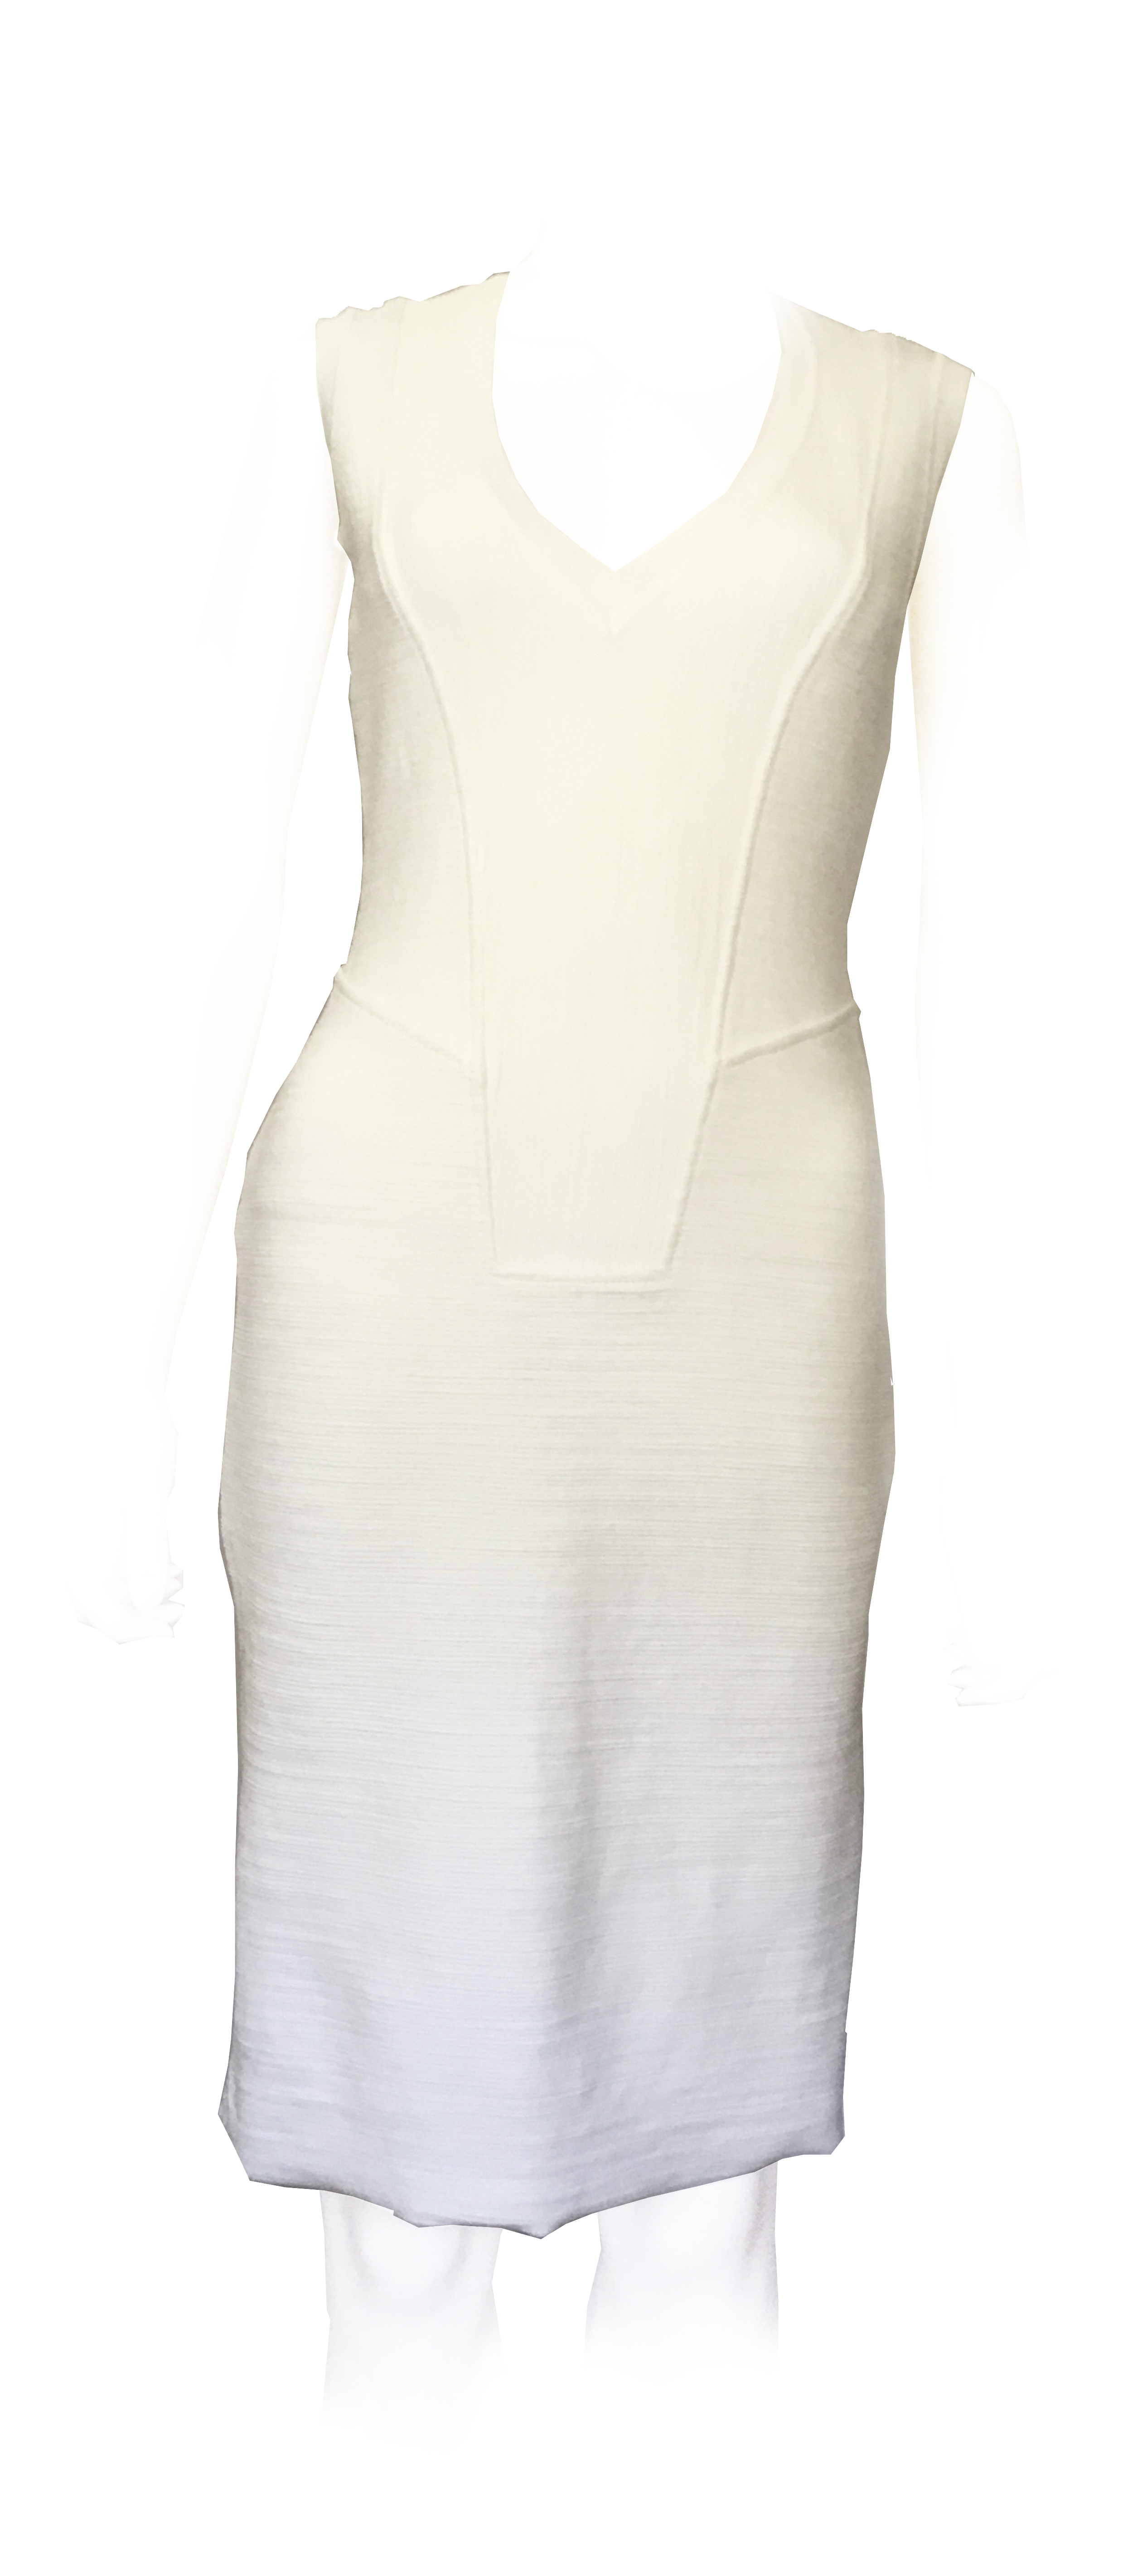 Givenchy White Sleeveless Fitted Dress